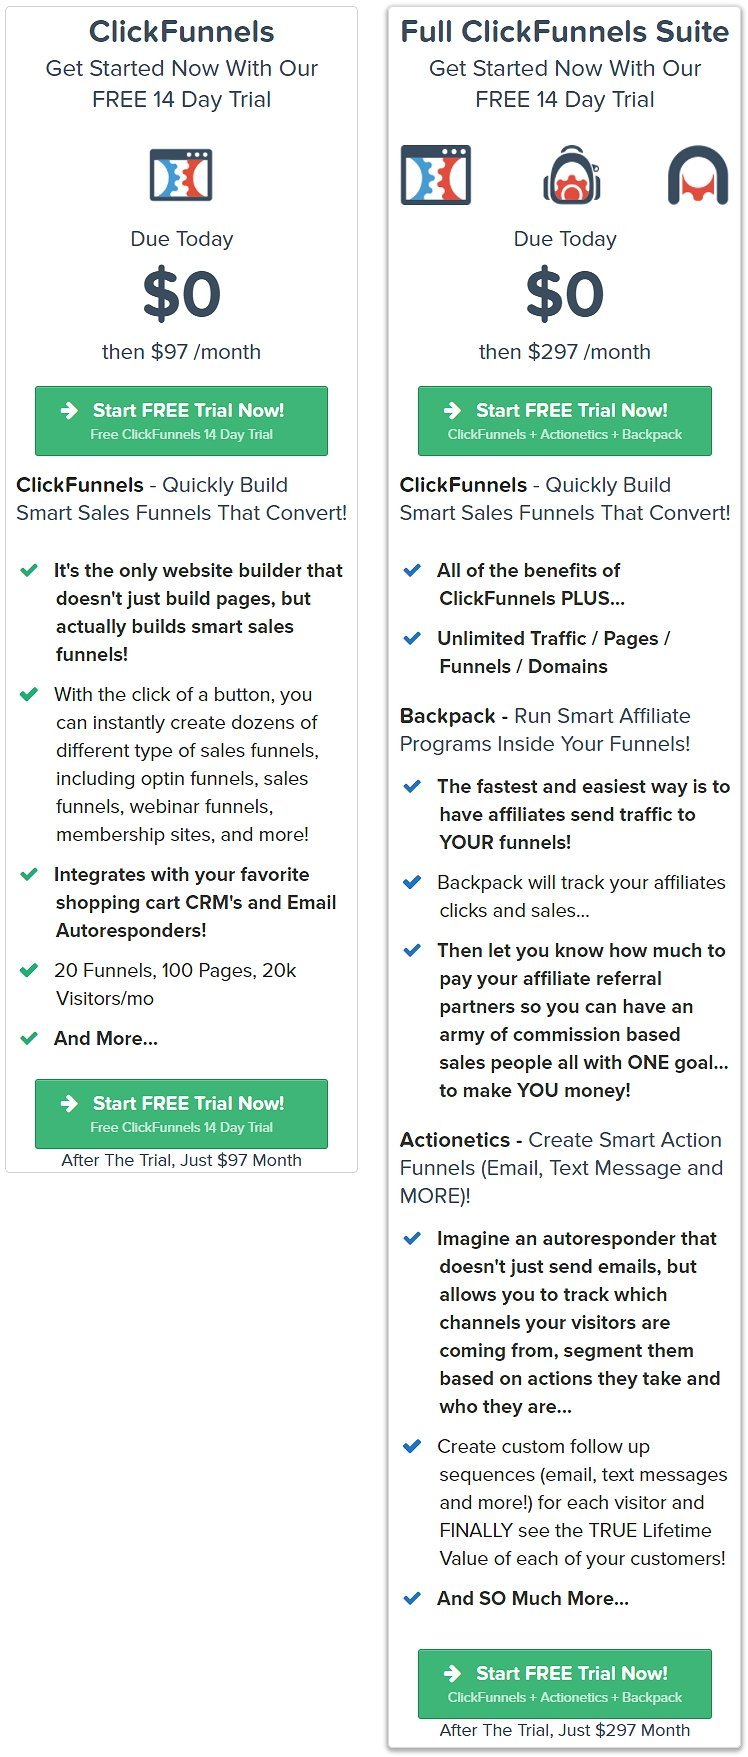 Check ClickFunnels™ Pricing Table Below - Collective plan